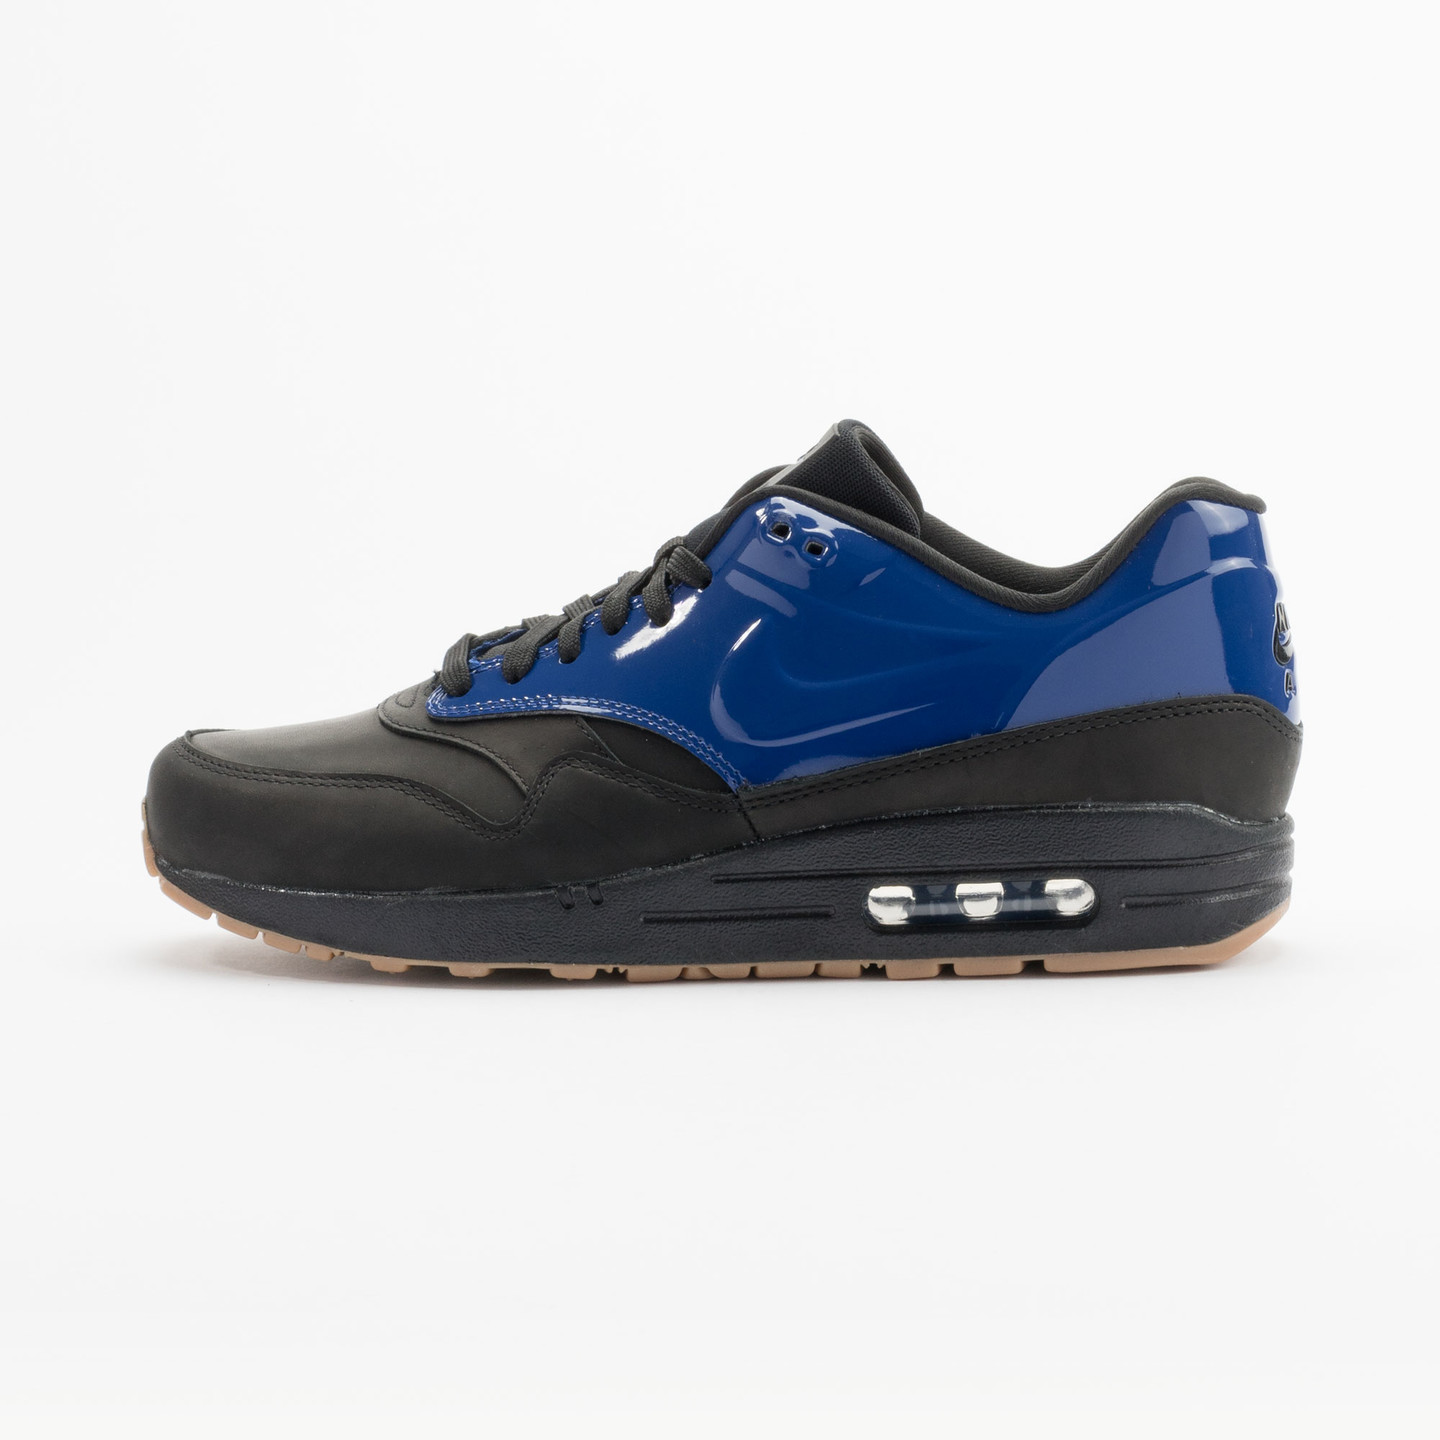 Nike Air Max 1 Vac Tech QS Deep Royal Blue / Black 831113-400-44